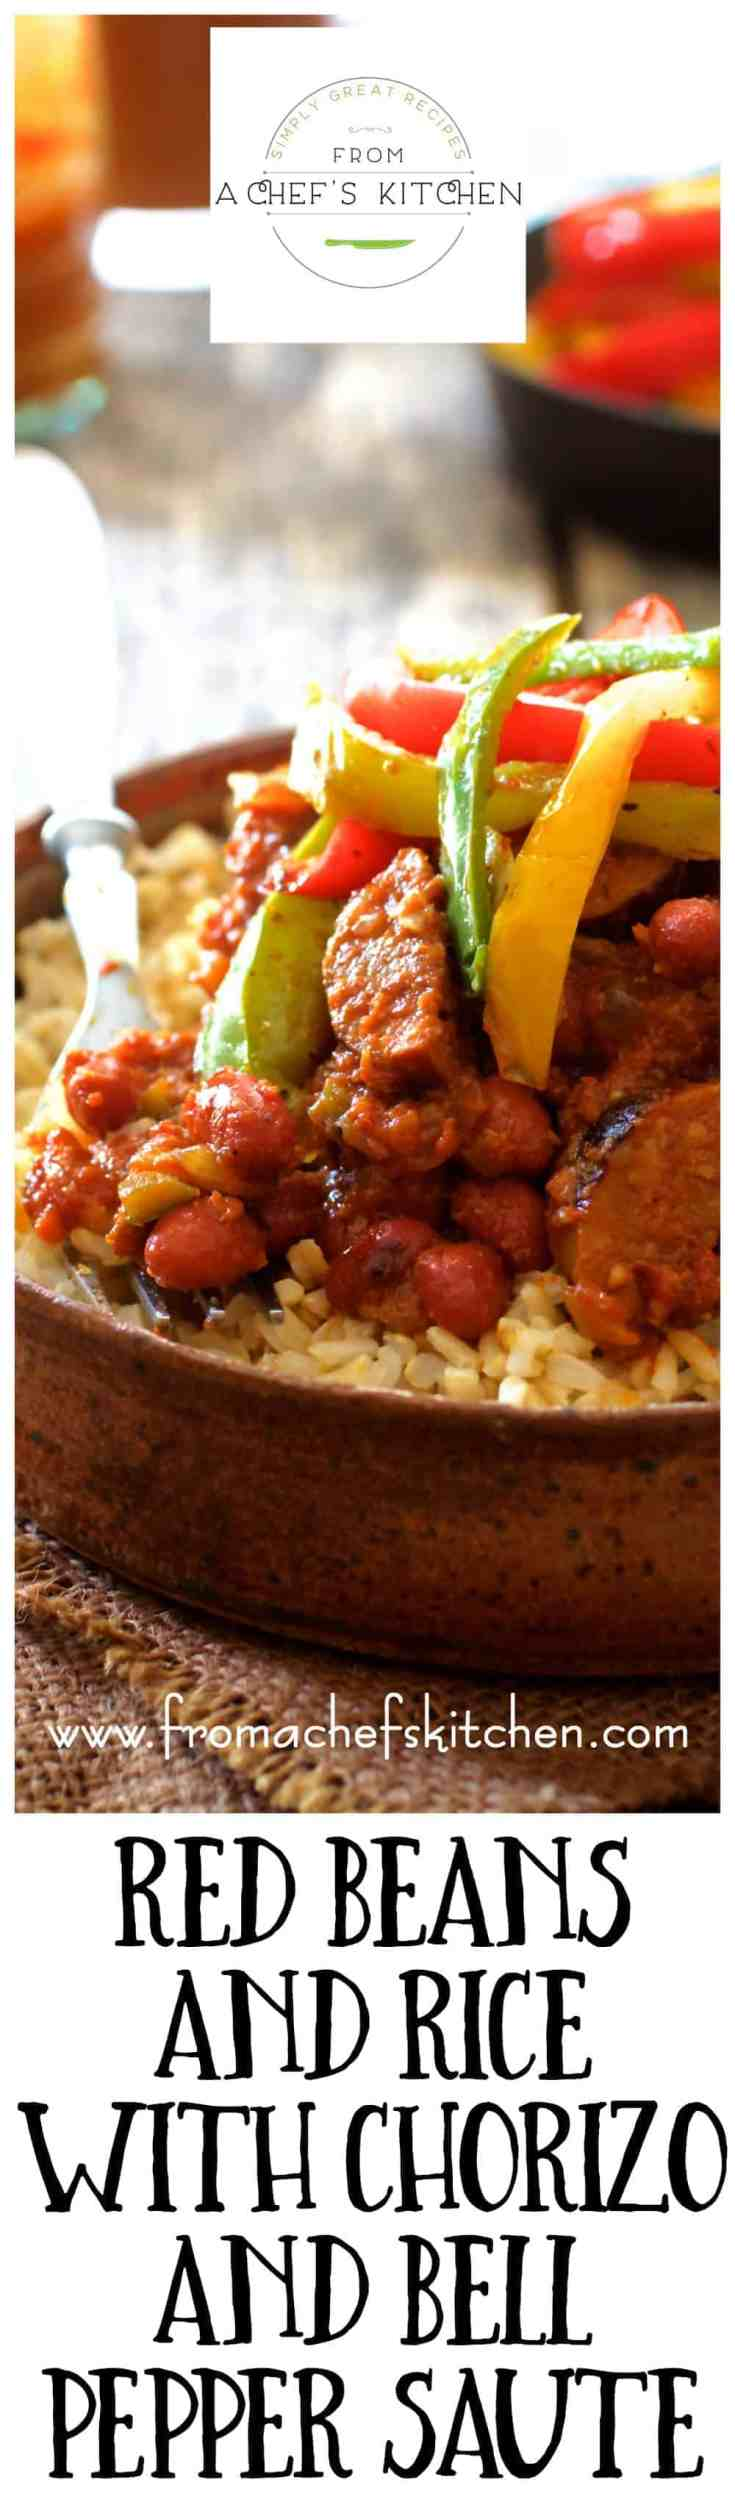 Red Beans and Rice with Chorizo and Bell Pepper Saute is perfect fall Tex-Mex inspired comfort food that's still on the light side! #redbeansandrice #redbeans #beansandrice #chorizo #bellpepper